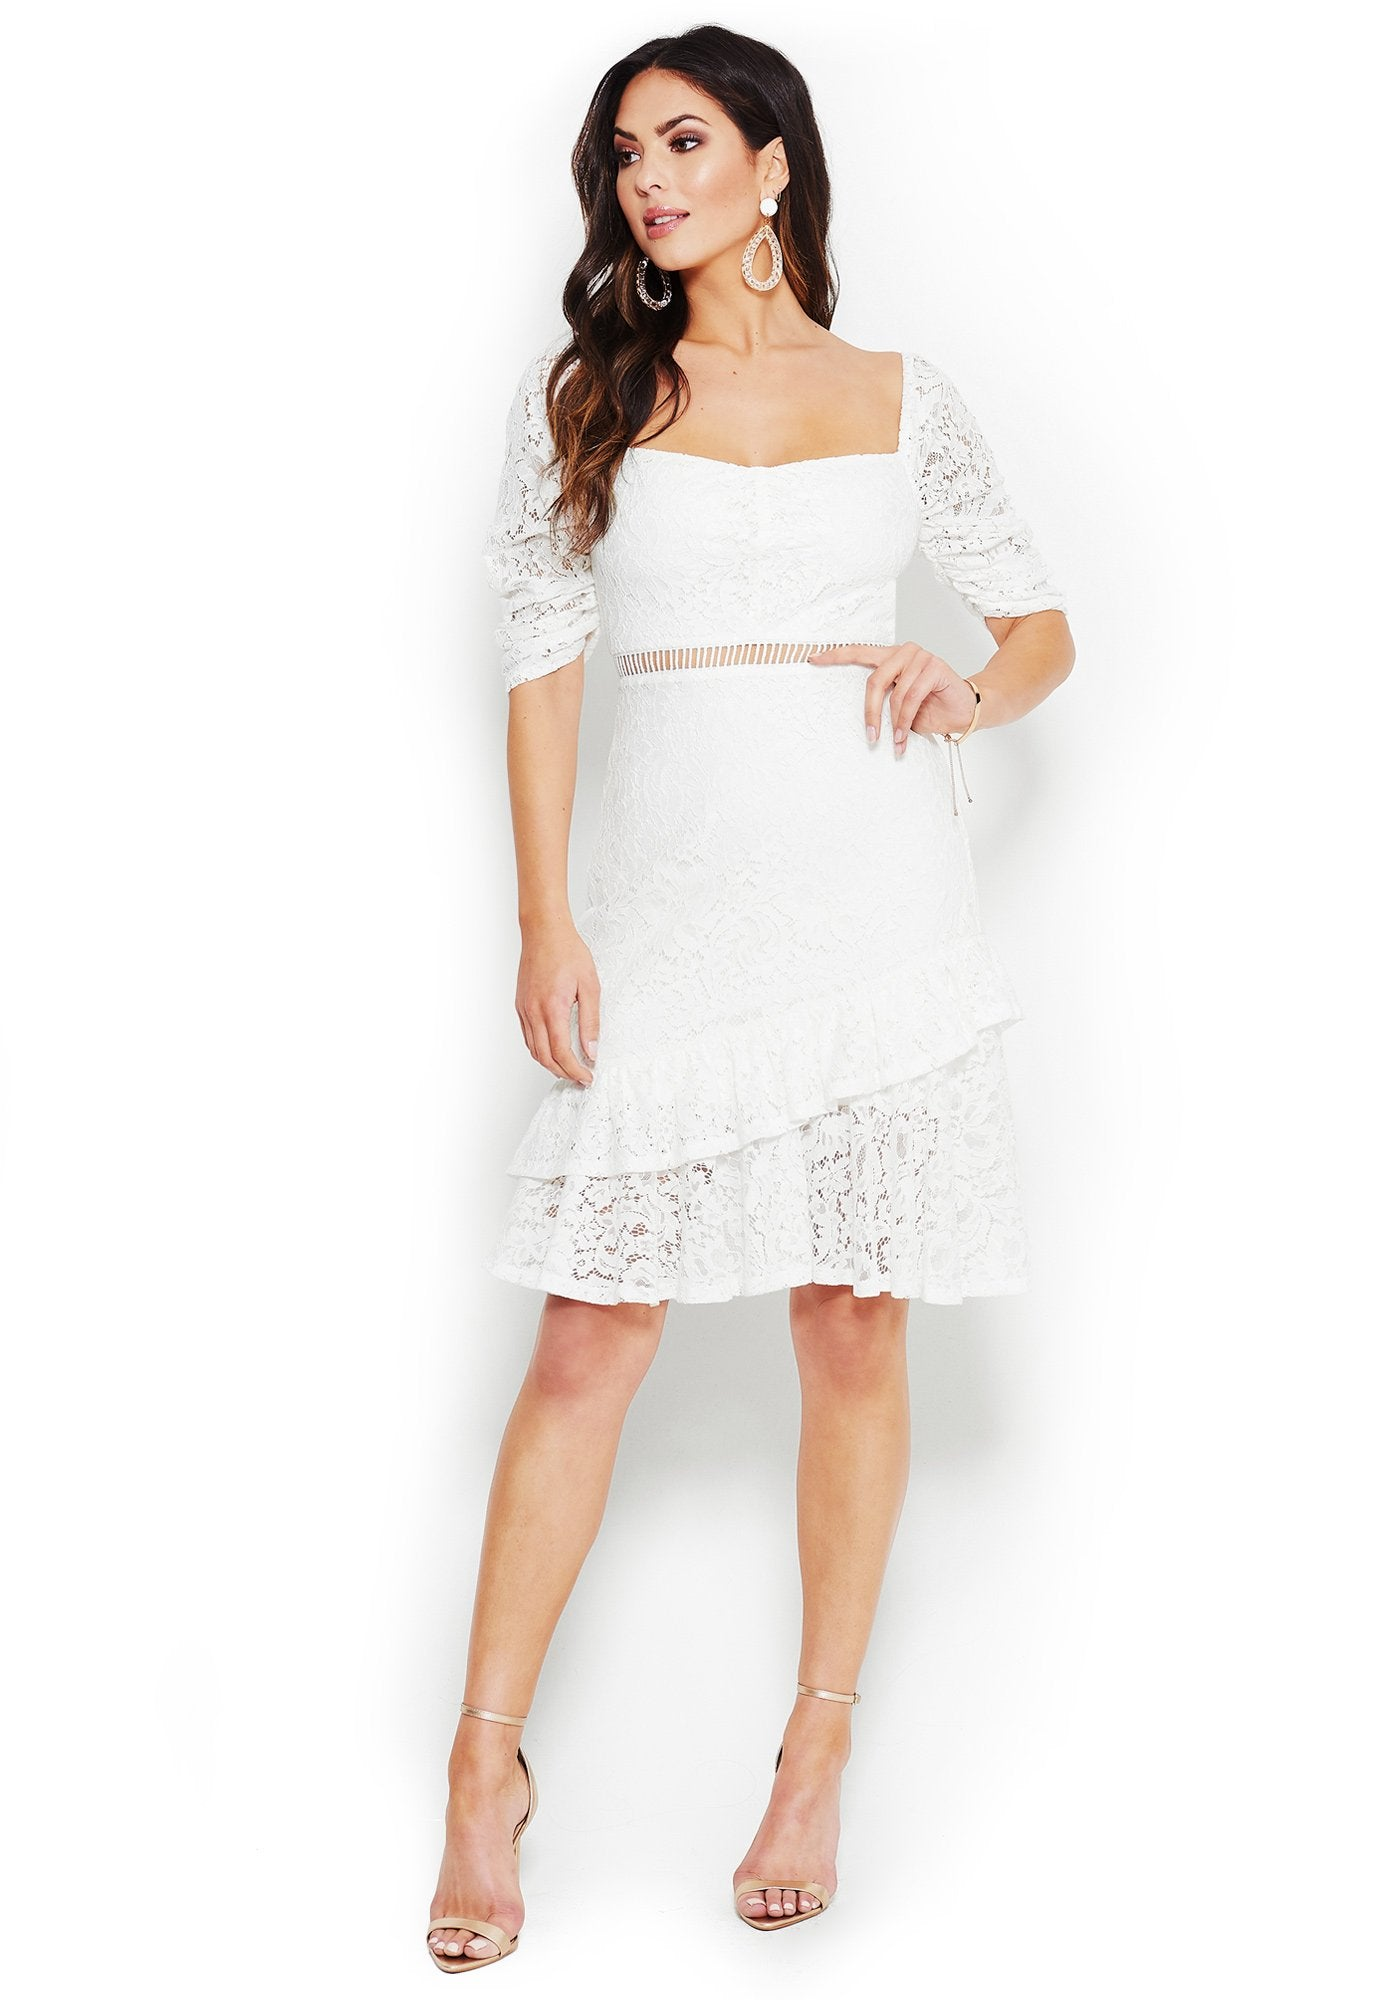 Bebe Women's Lace Off Shoulder Dress, Size XXS in BRIGHT WHITE Polyester